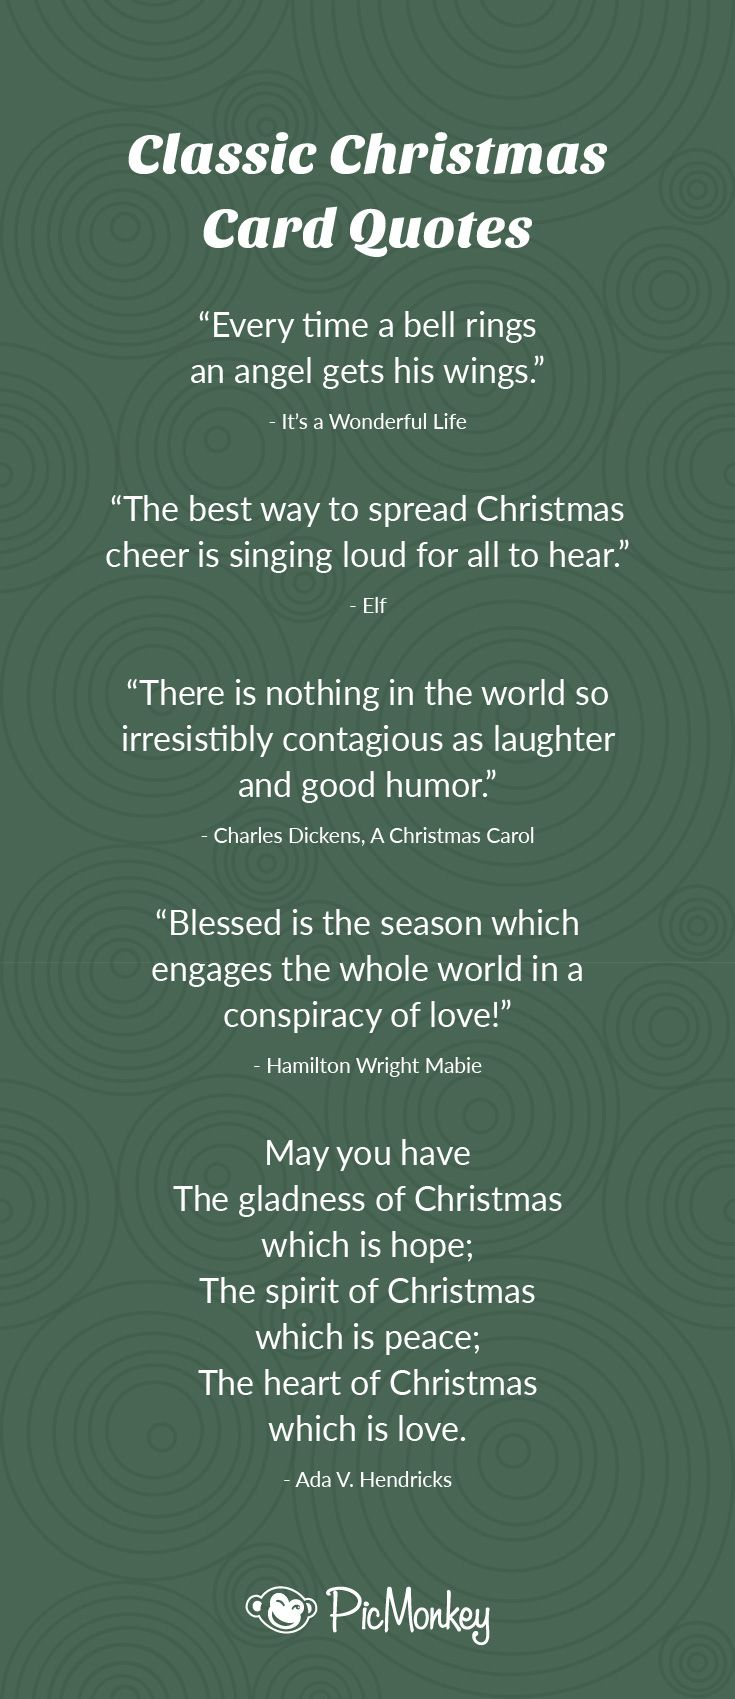 51 Best Holiday Card Ideas Images On Pinterest Holiday Cards Card